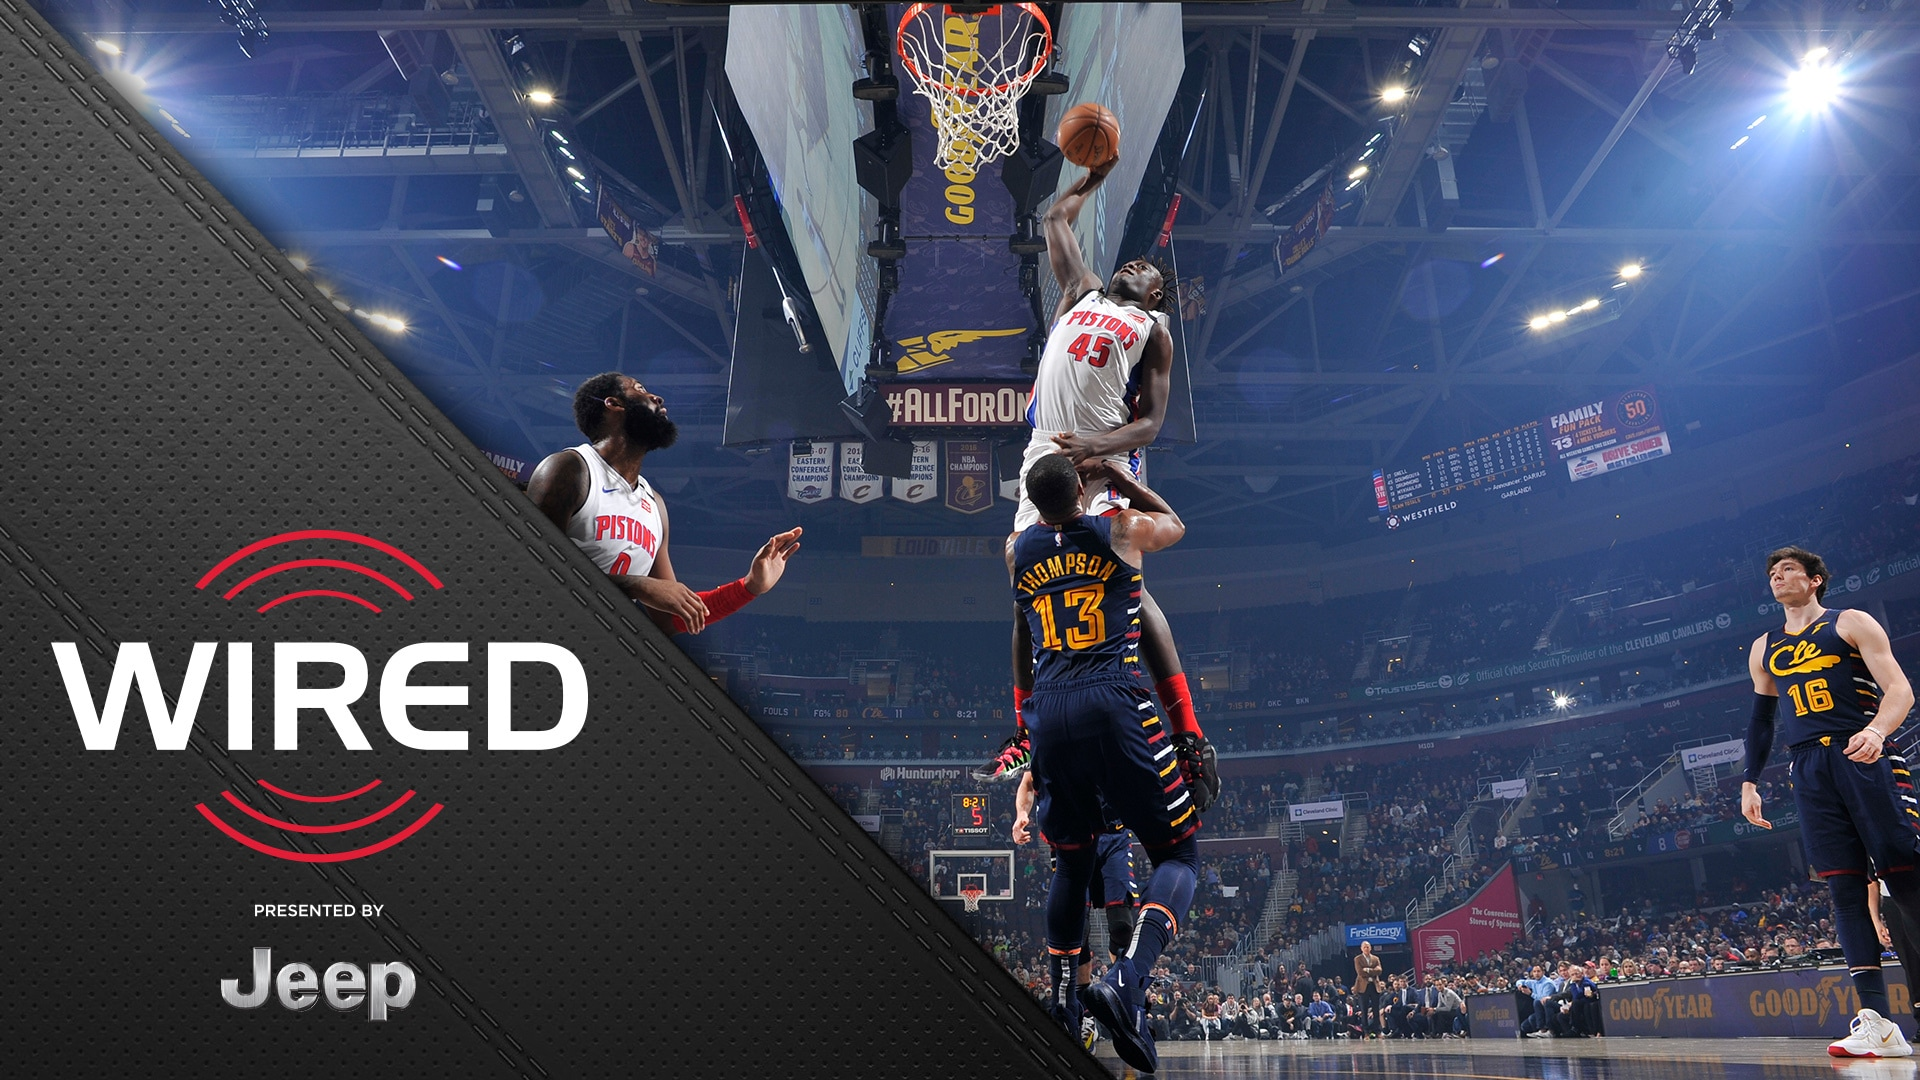 Wired, presented by Jeep: Pistons vs Cleveland Cavaliers